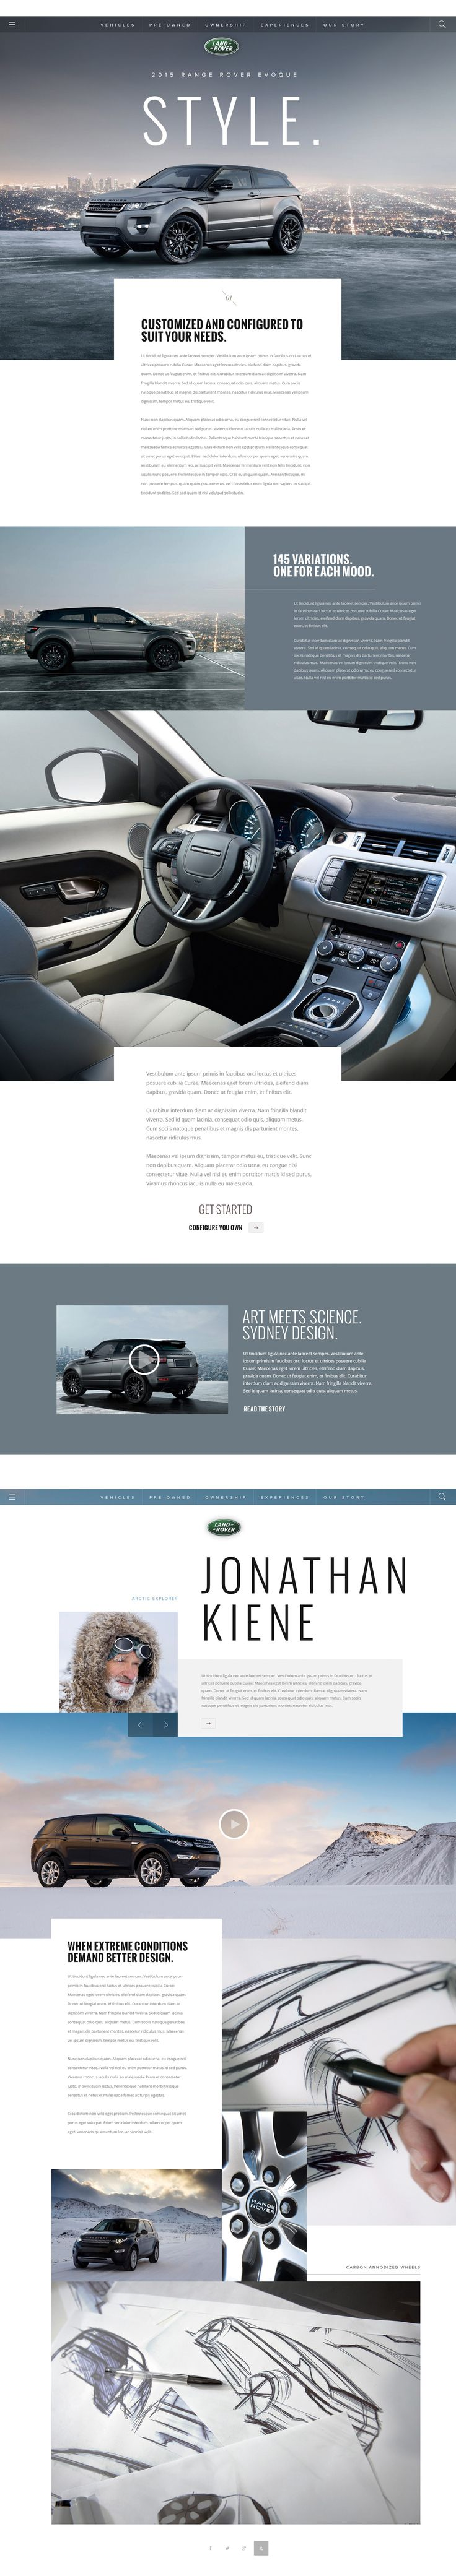 Landrover Website Design